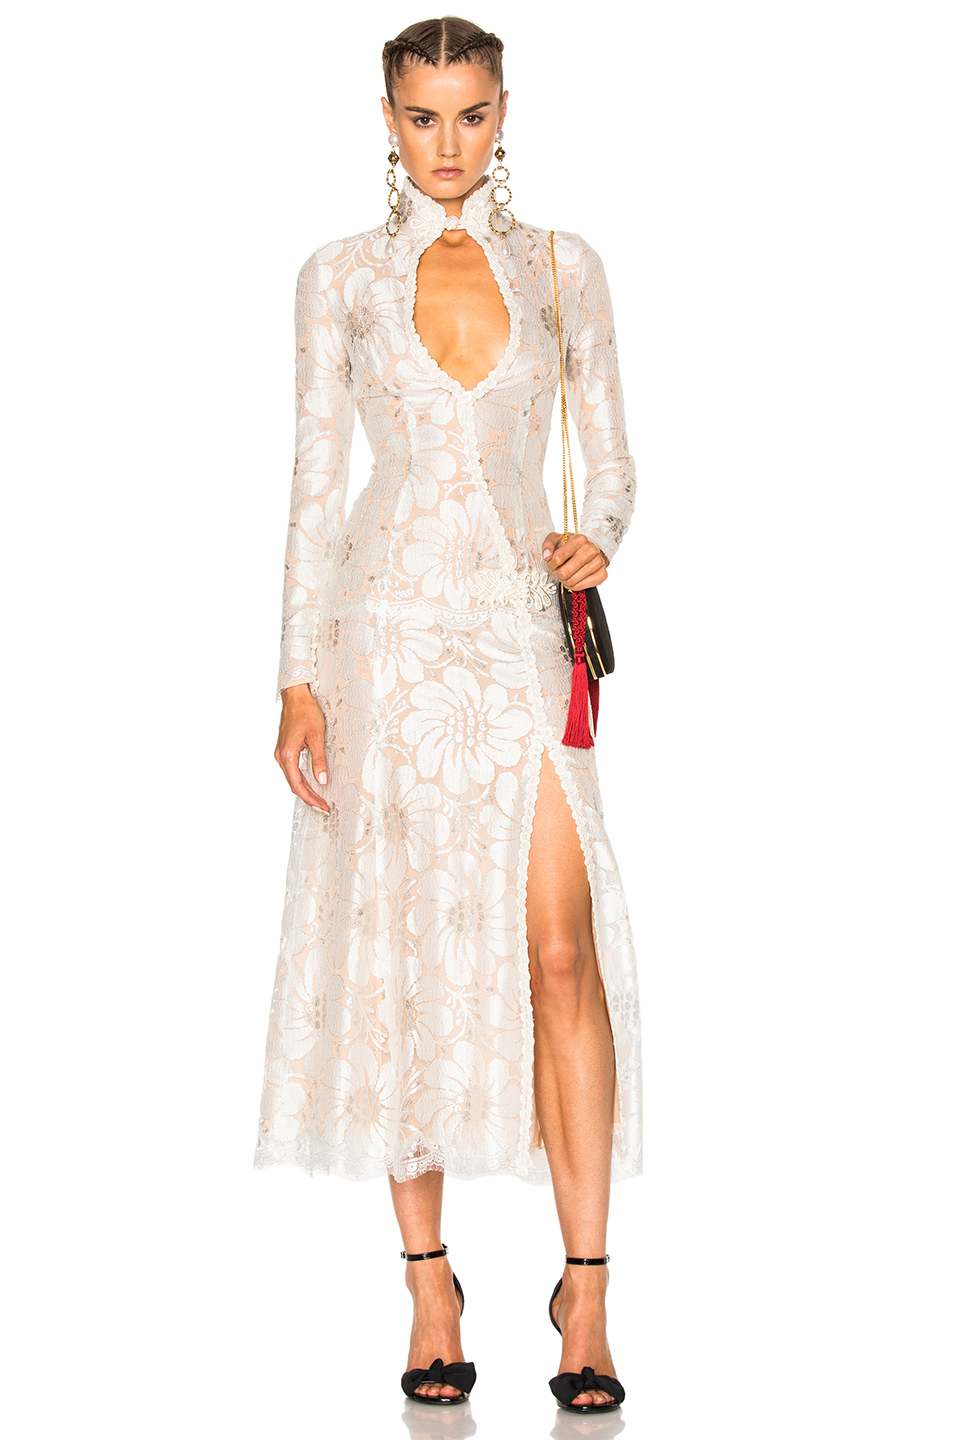 Alessandra Rich for FWRD L'Amant Chantilly Embellished Lace Dress in White,Neutrals